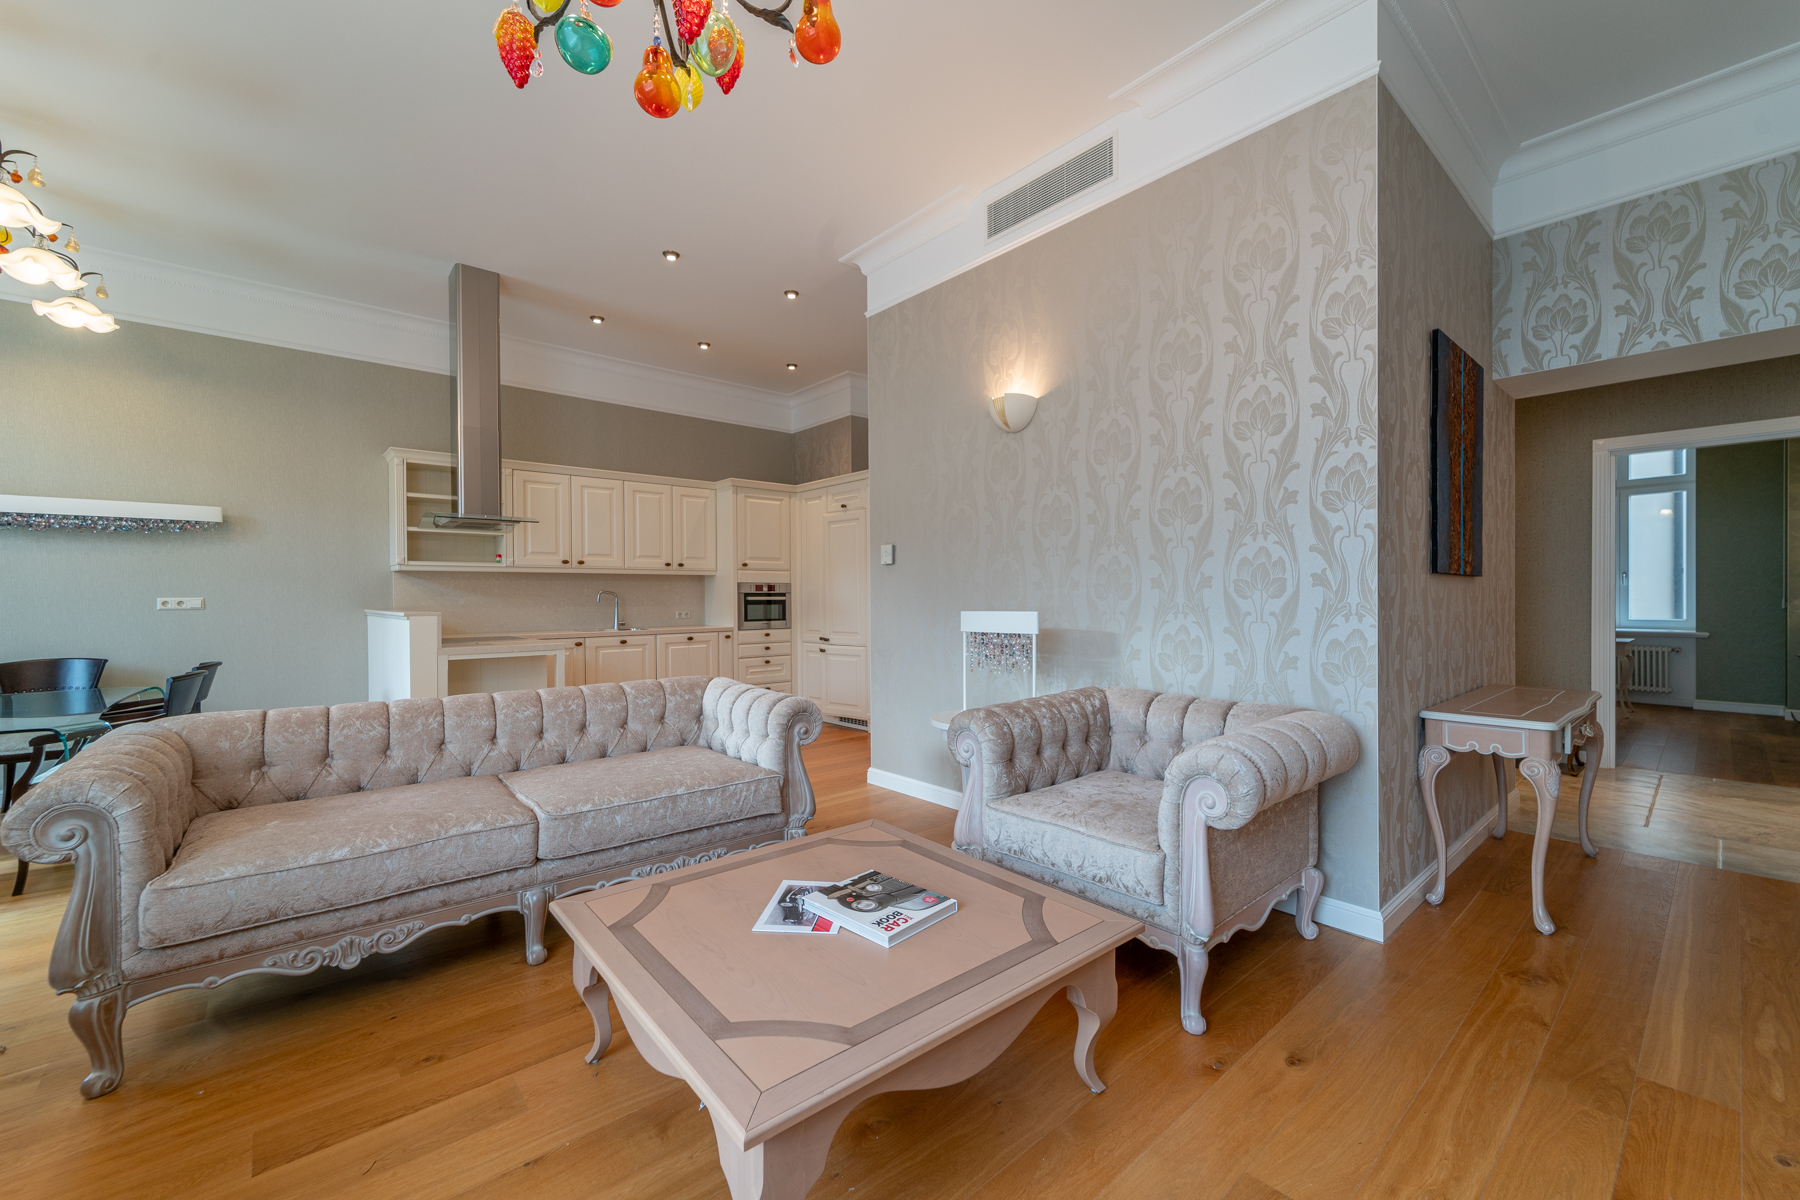 Apartments for Sale at 3 bedroom apartment in the Art Nouveau Centre of Riga Other Countries